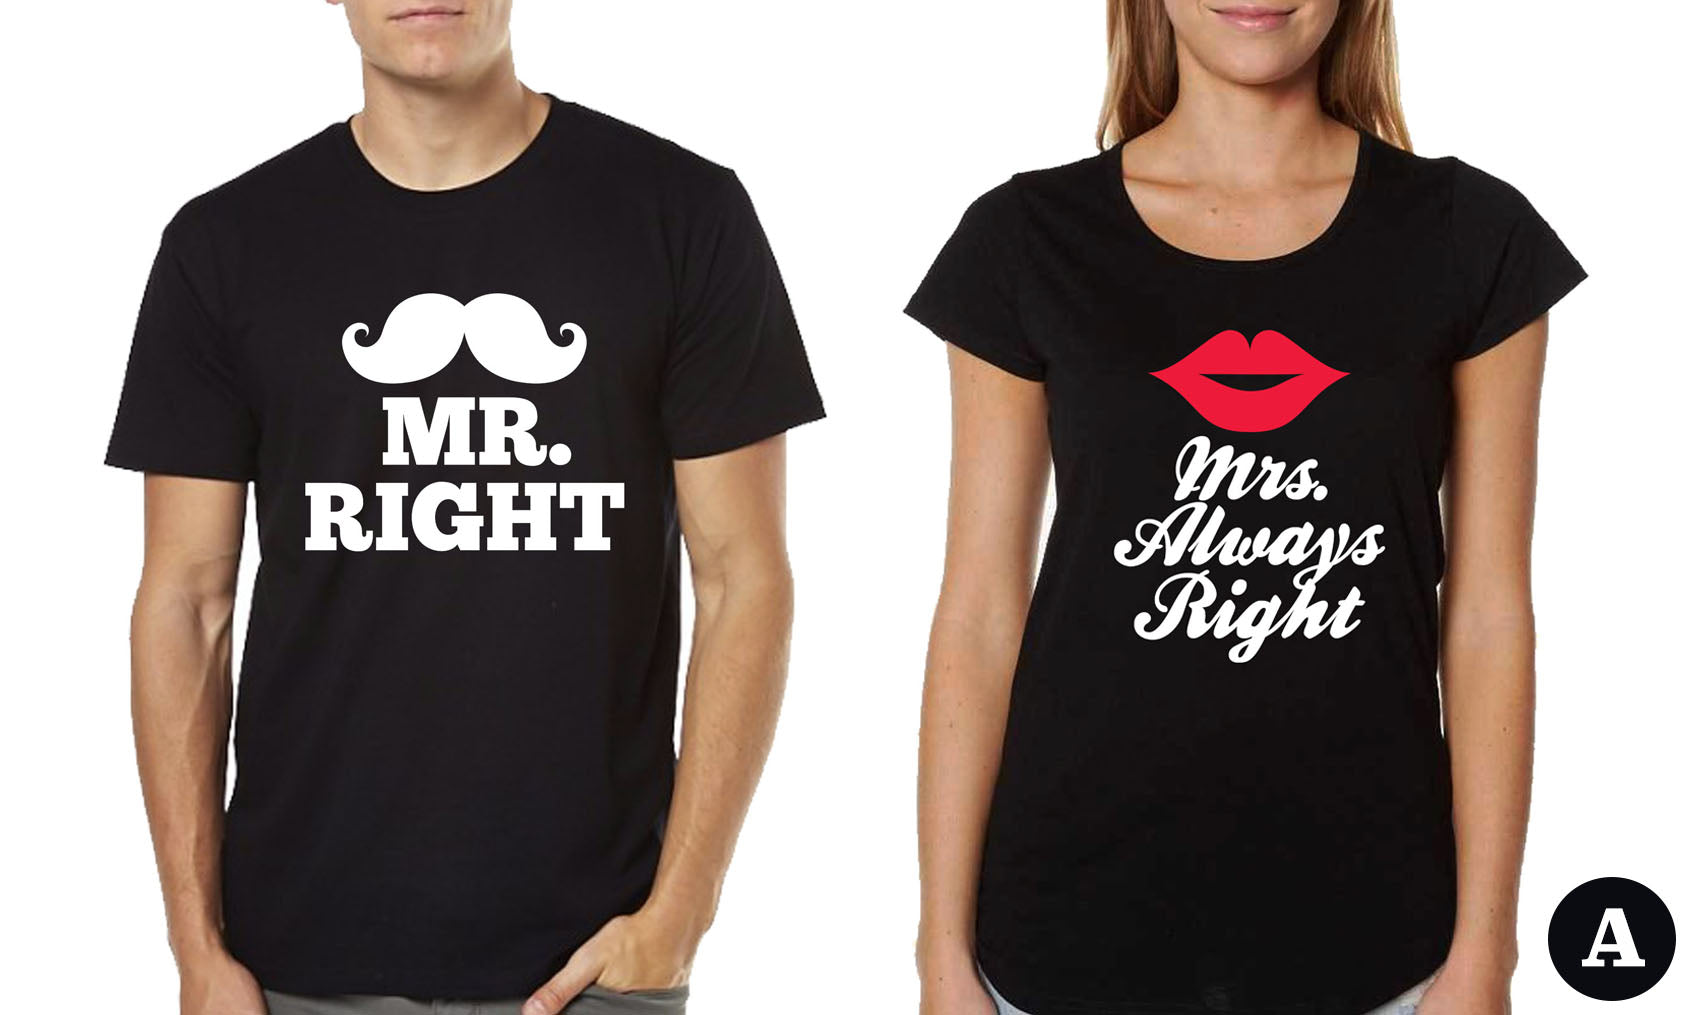 Couple T-shirts - Mr. Right & Mrs. always Right